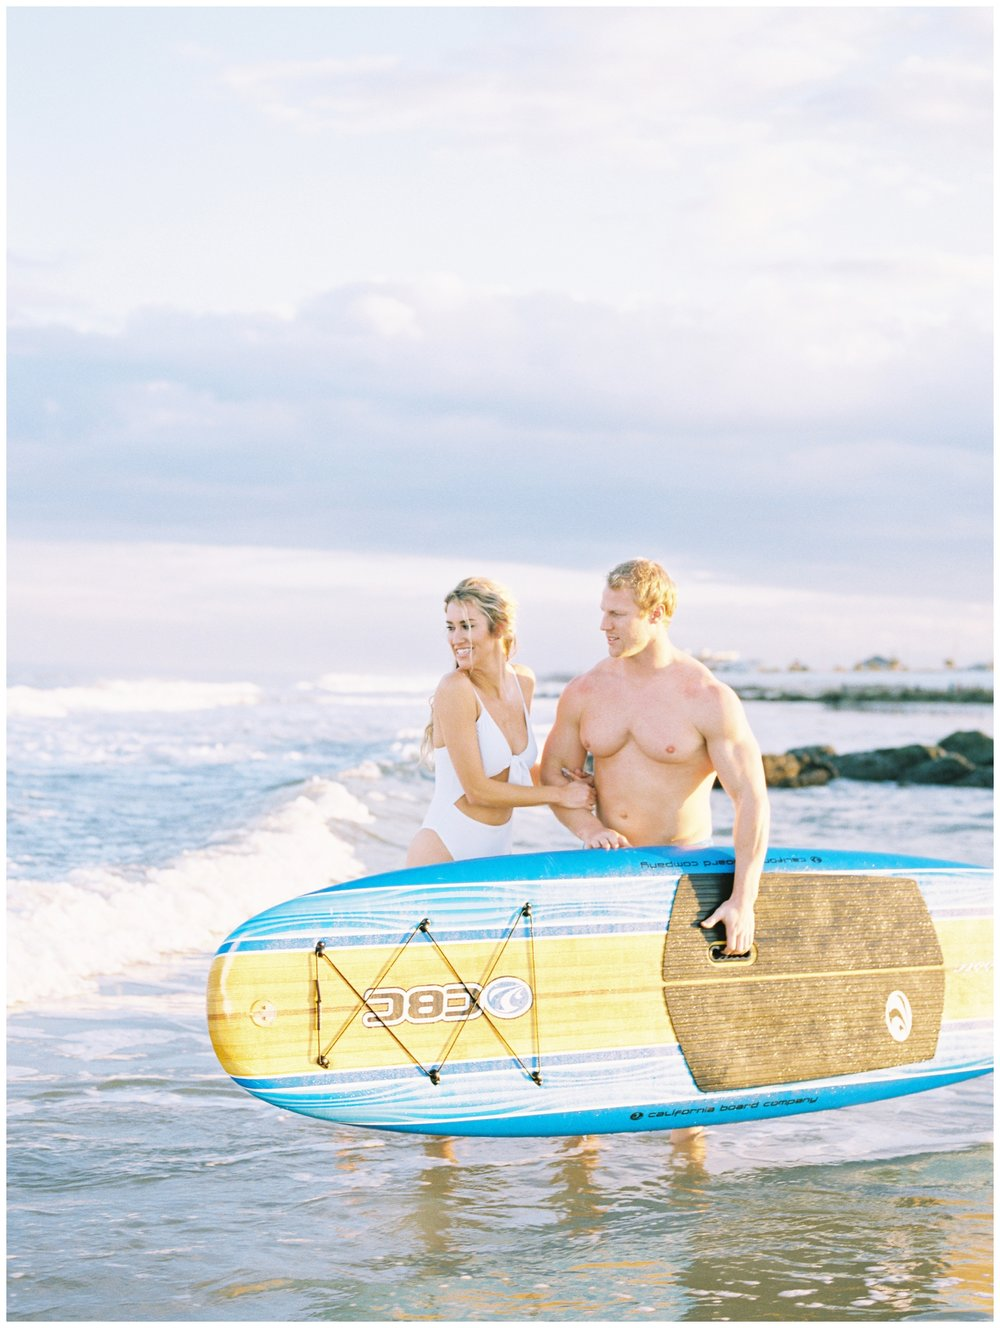 Lisa Silva Photography -Beachy Lifestyle Engagement Session in Palm Coast Florida - Jacksonville Film Photograpgers_0028.jpg